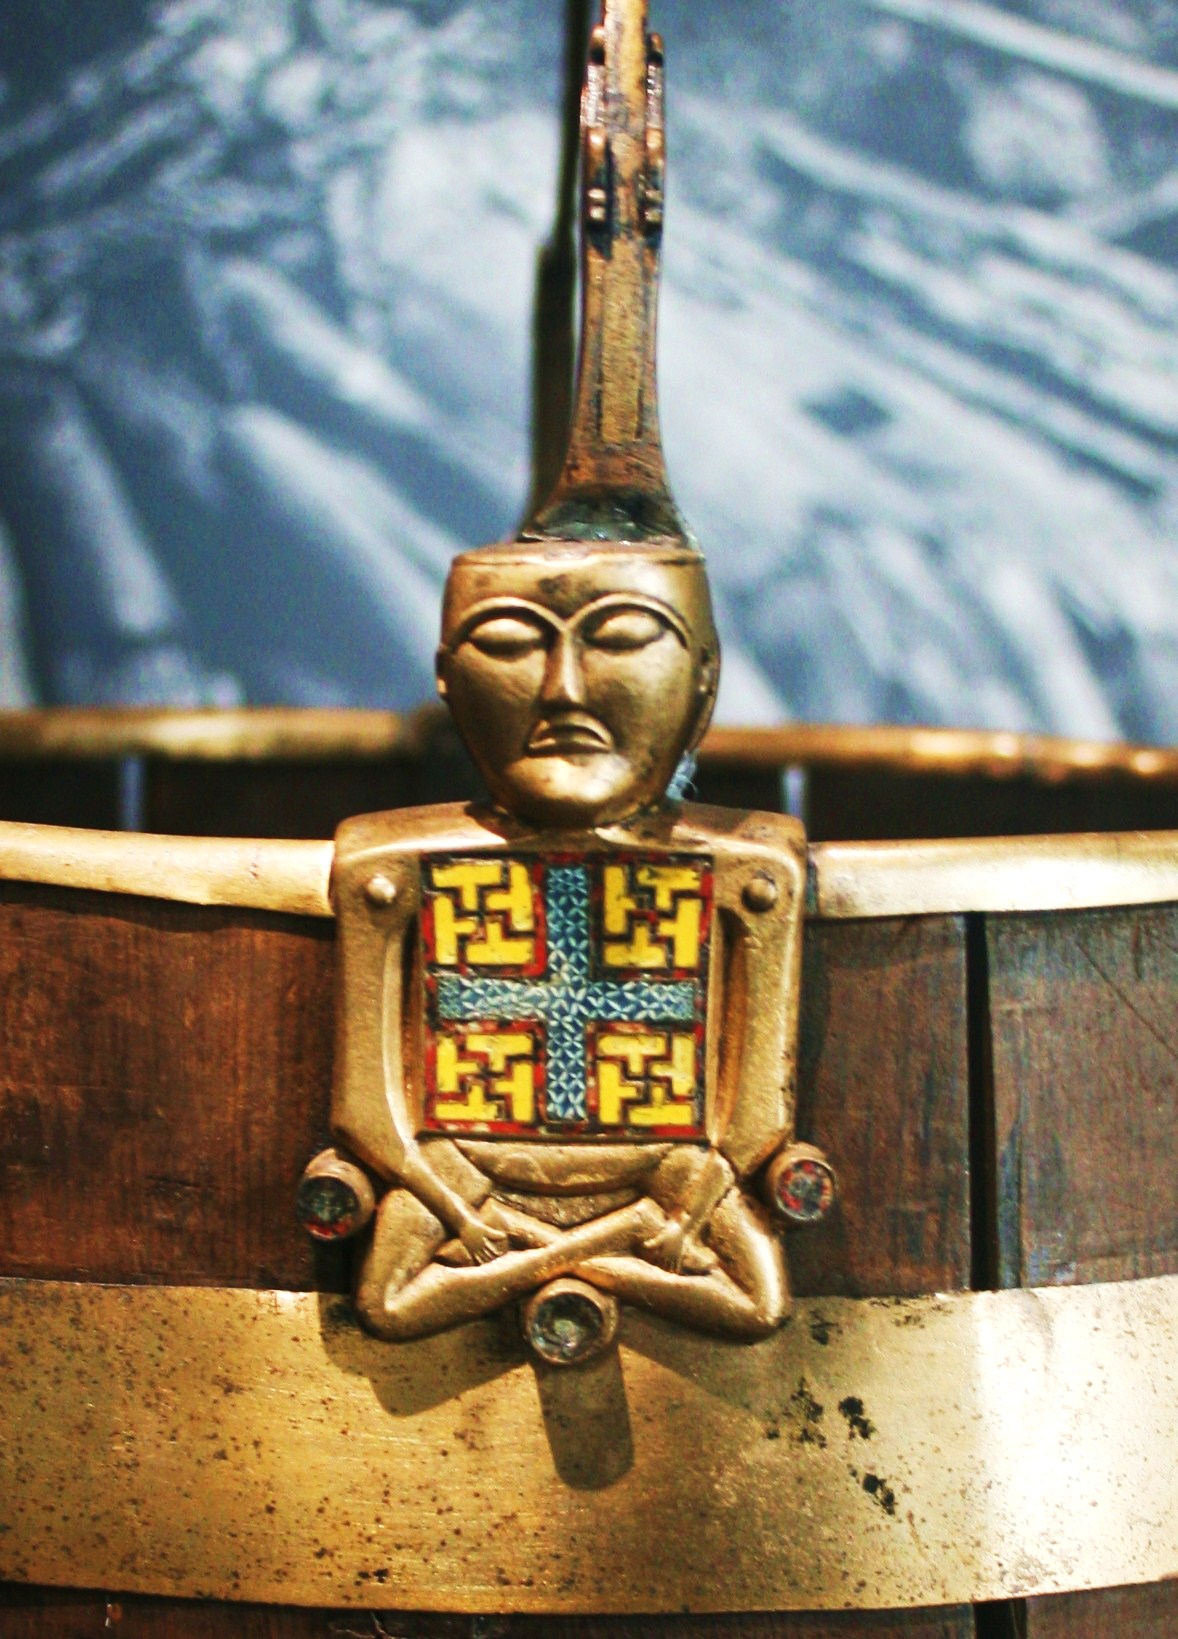 https://upload.wikimedia.org/wikipedia/commons/d/d9/Buckle_from_Oseberg_Vikingship_Buddha.JPG